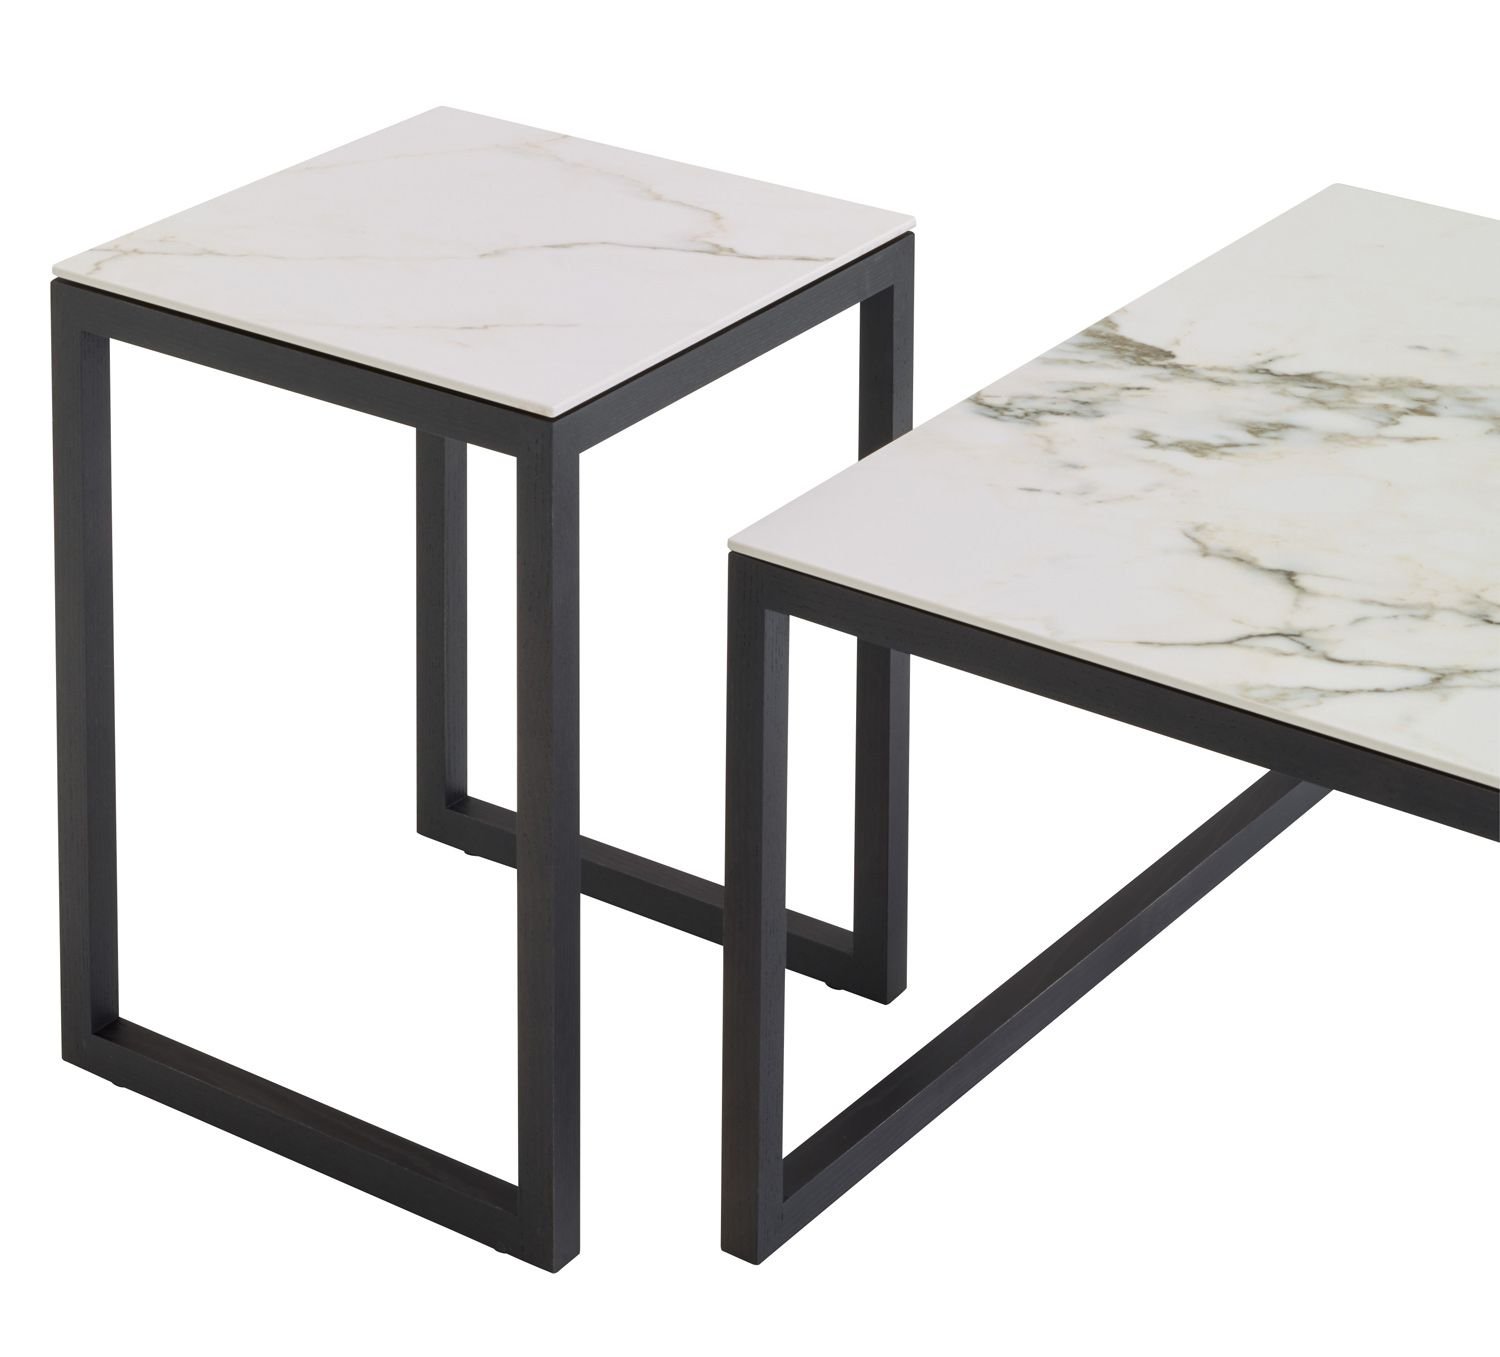 iso occasional table set in white marble effect stoneware designed by marie christine dorner. Black Bedroom Furniture Sets. Home Design Ideas